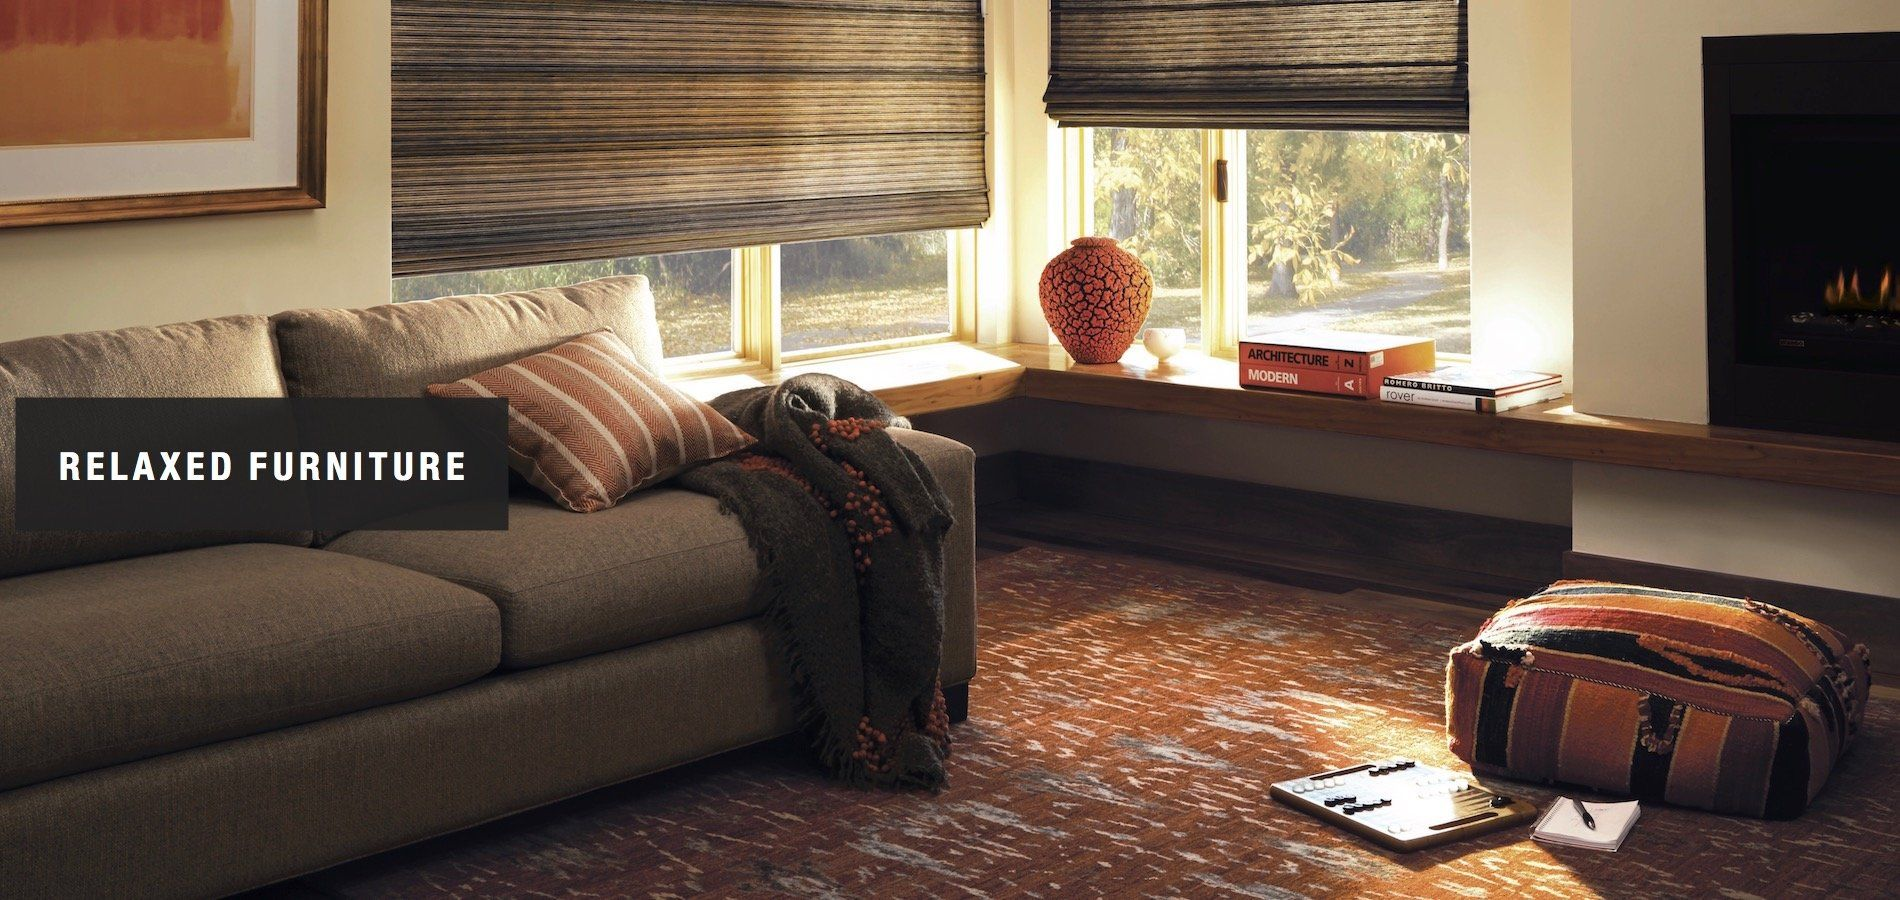 Window coverings ideas  relaxed furniture can help you slow down  ideas from peninsula